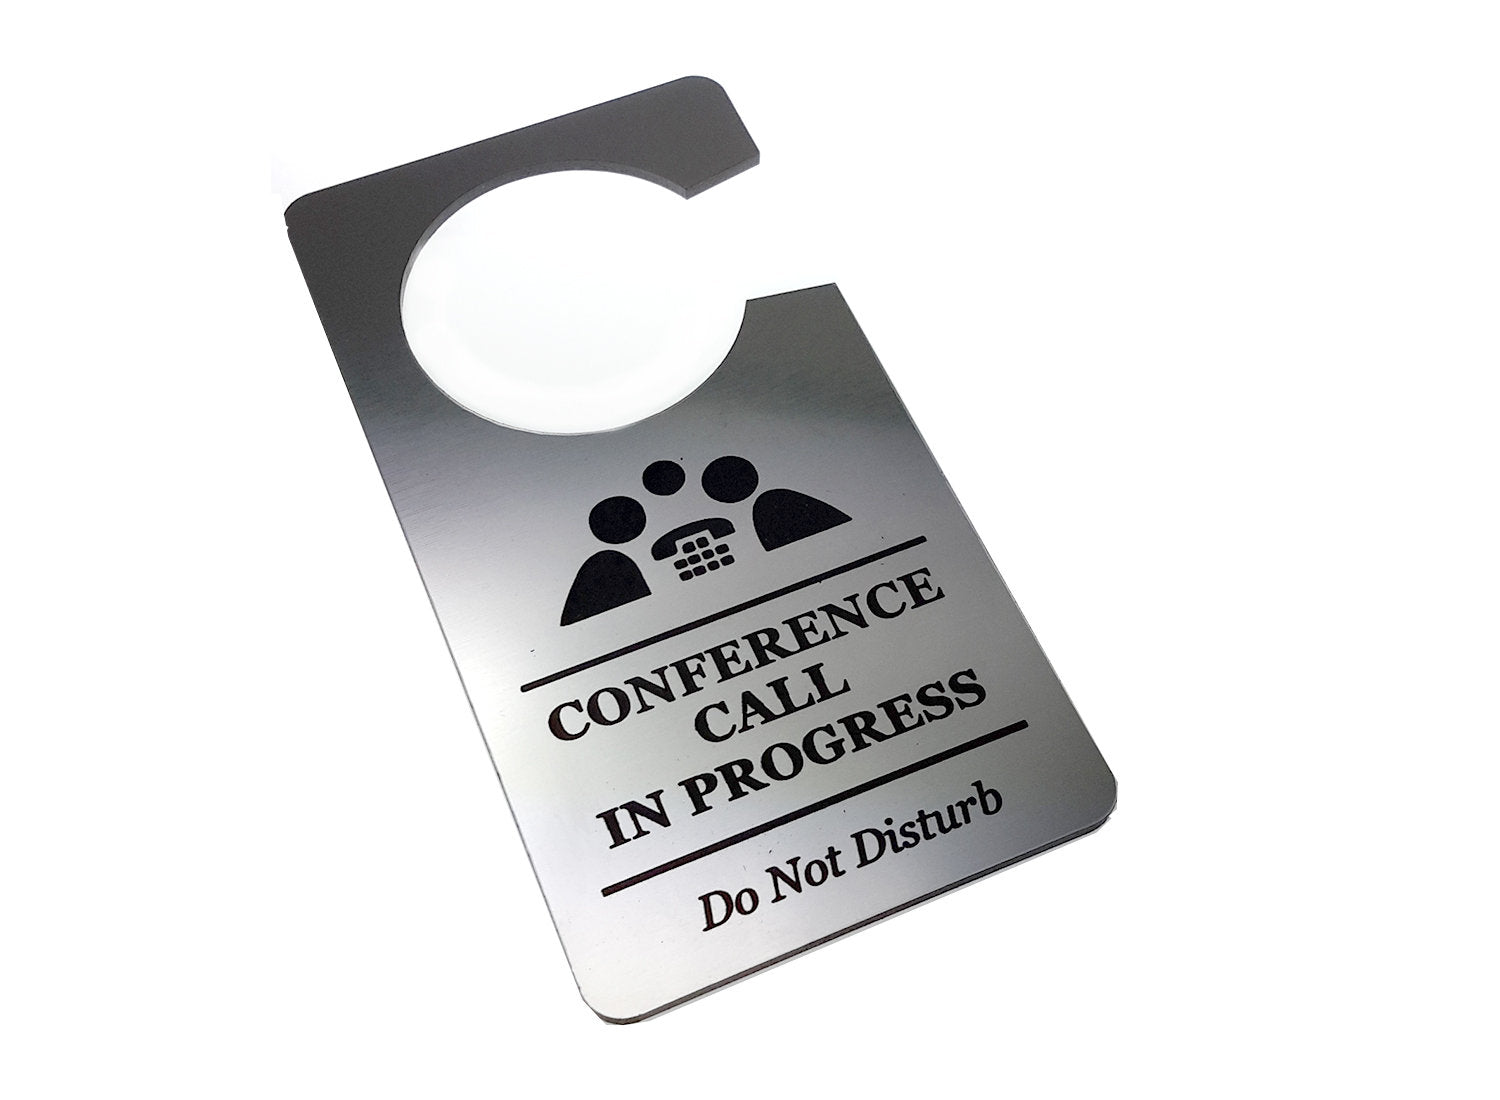 Conference Call In Progress, Do Not Disturb - Generic Silver, Room Door Sign - for Business, Corporate, Home Office, Hotel